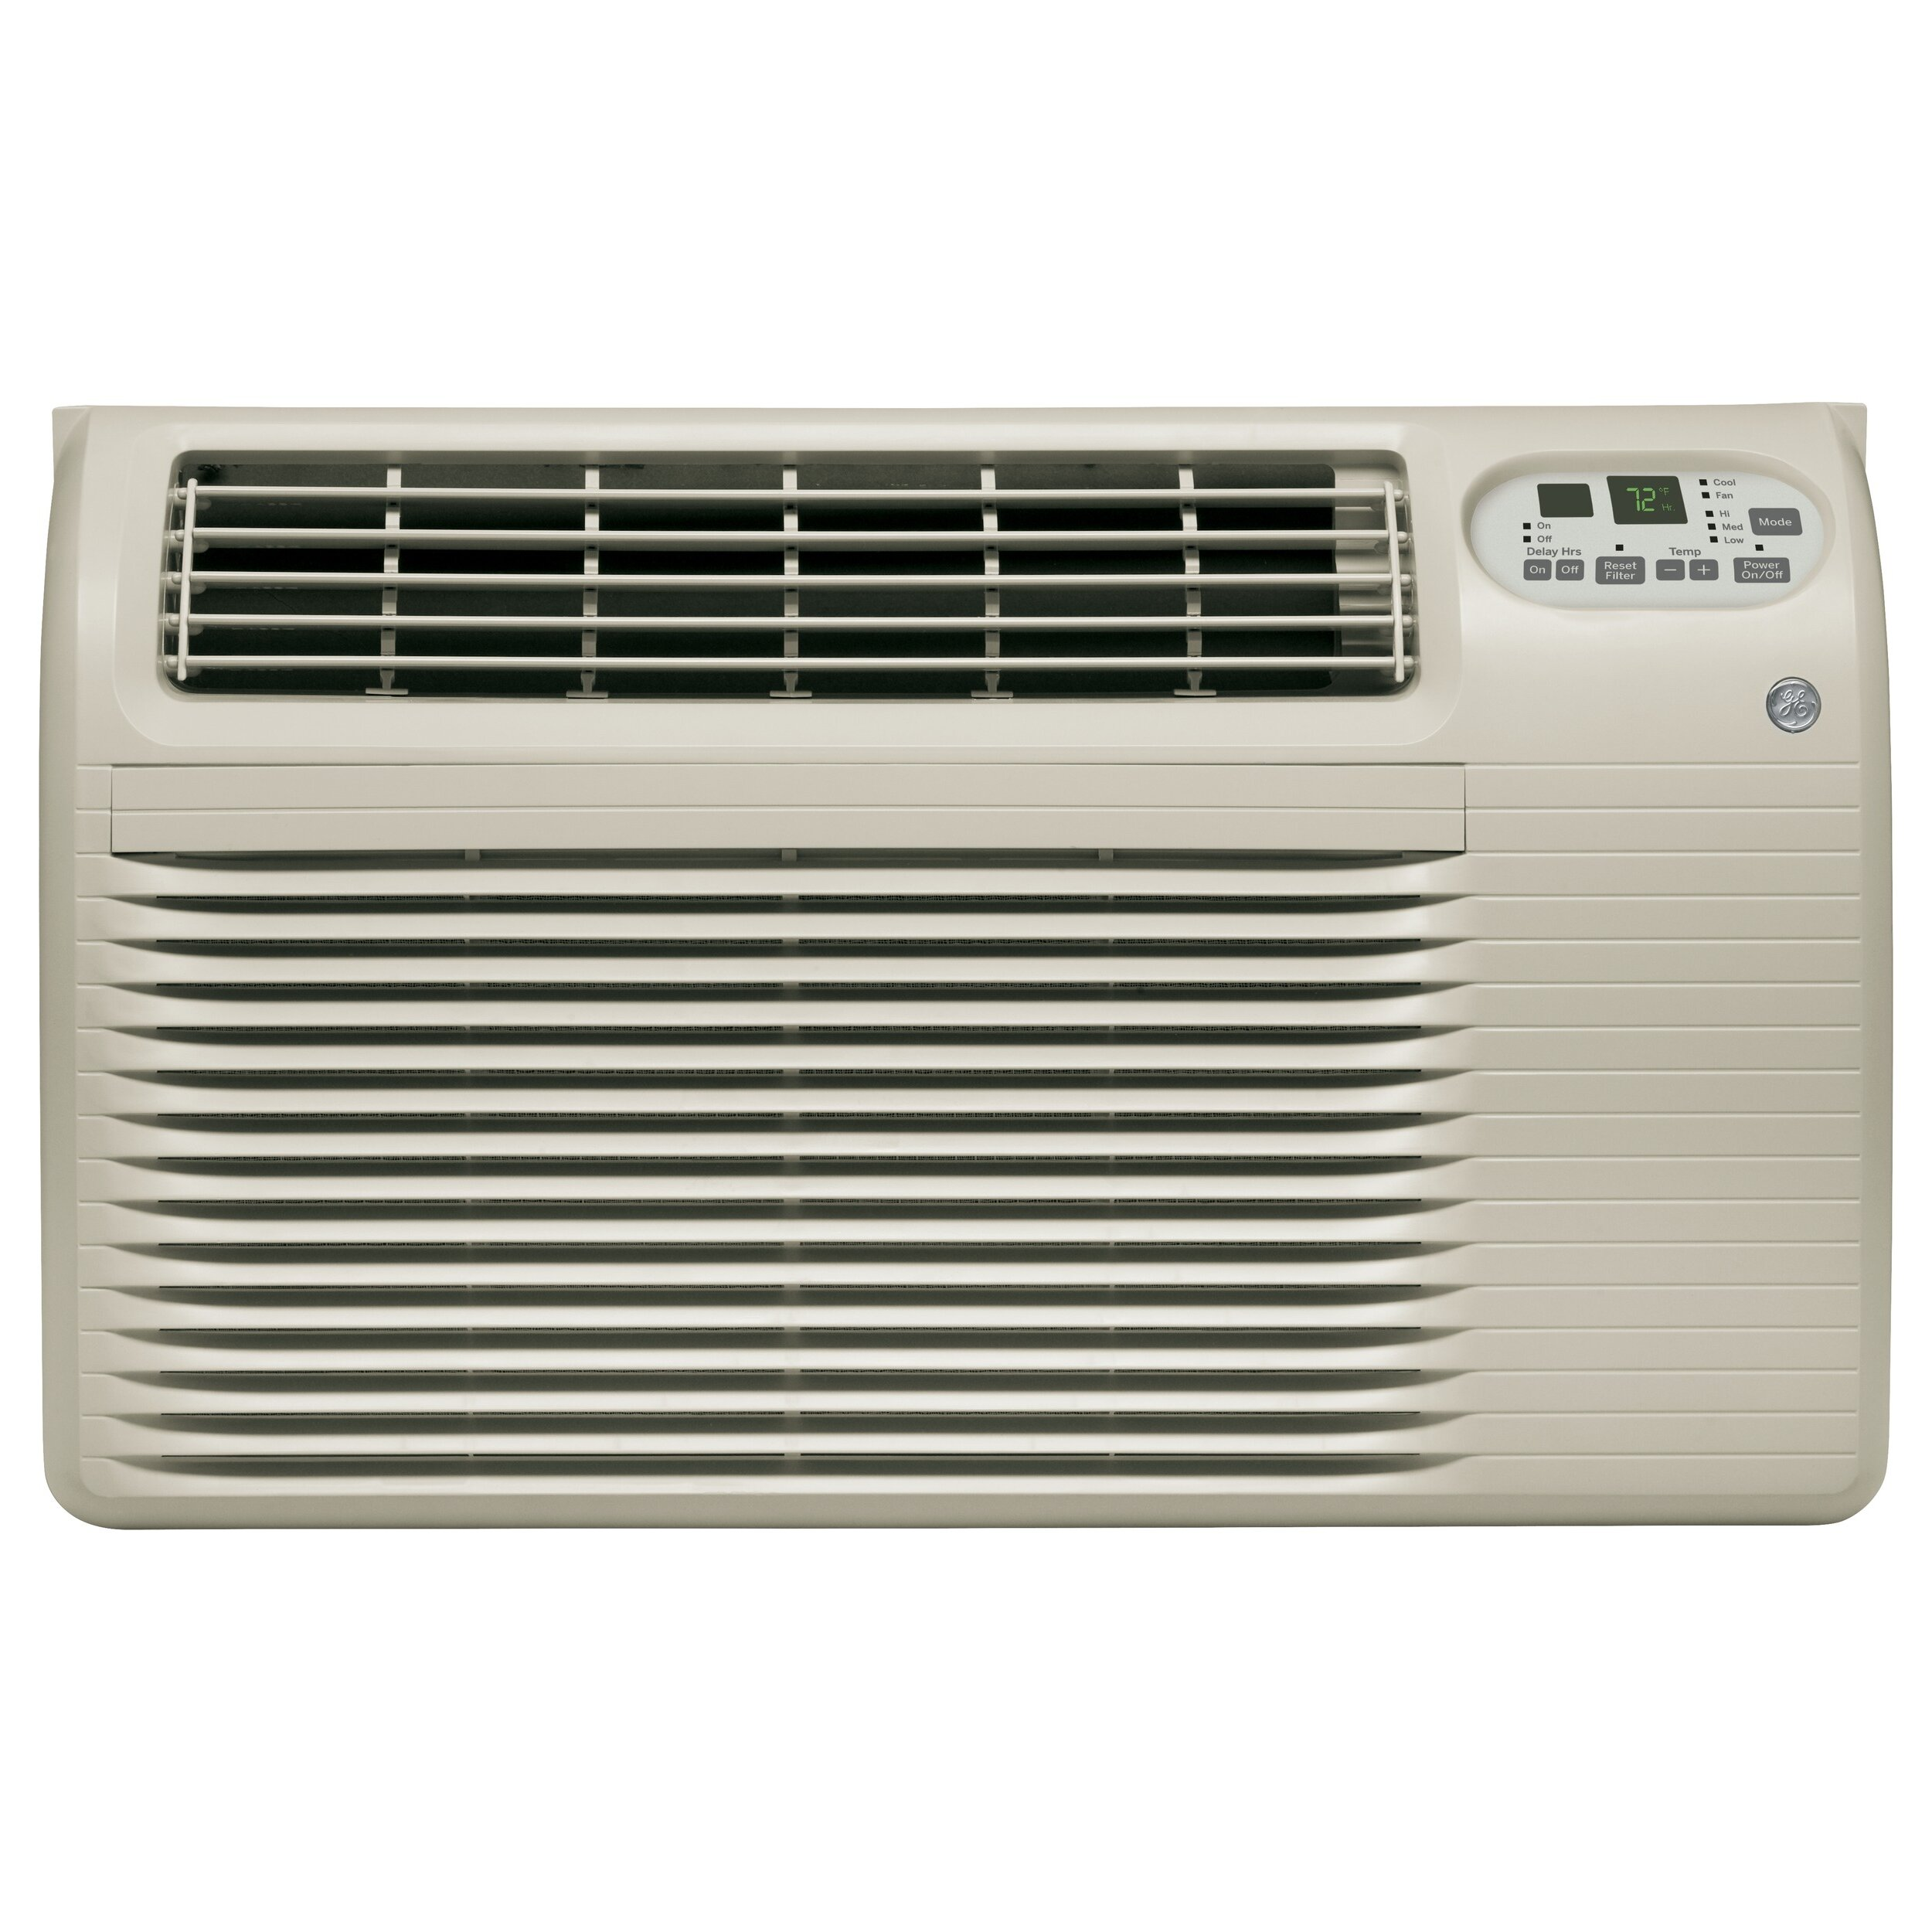 12000 BTU Through the Wall Air Conditioner with Remote by General  #766B55